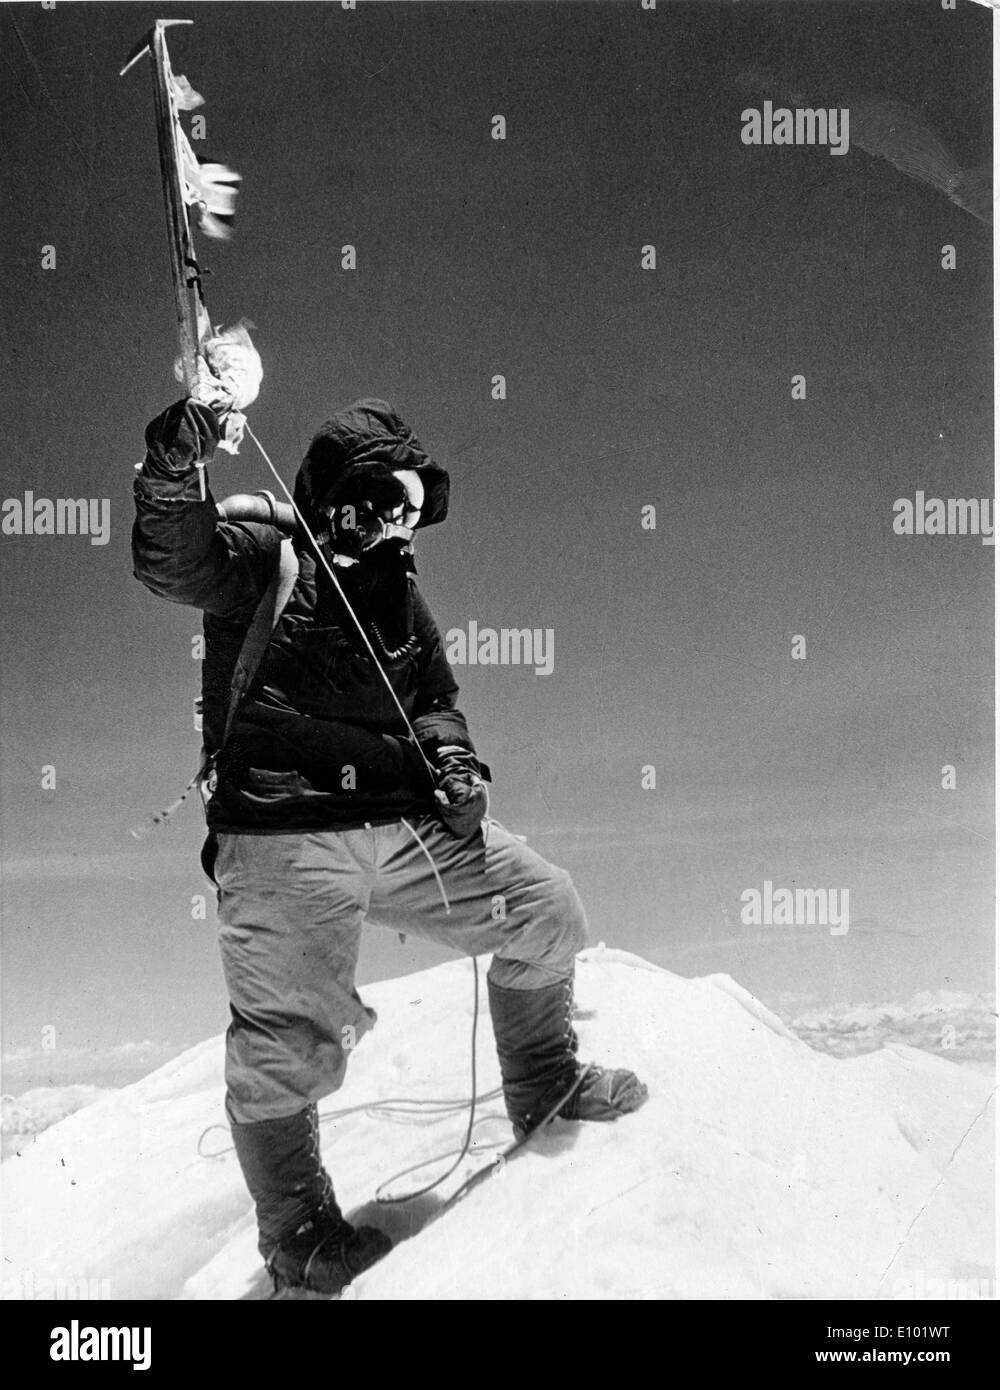 MOUNT EVEREST explorer holding an icy pick ax attached to a rope - Stock Image